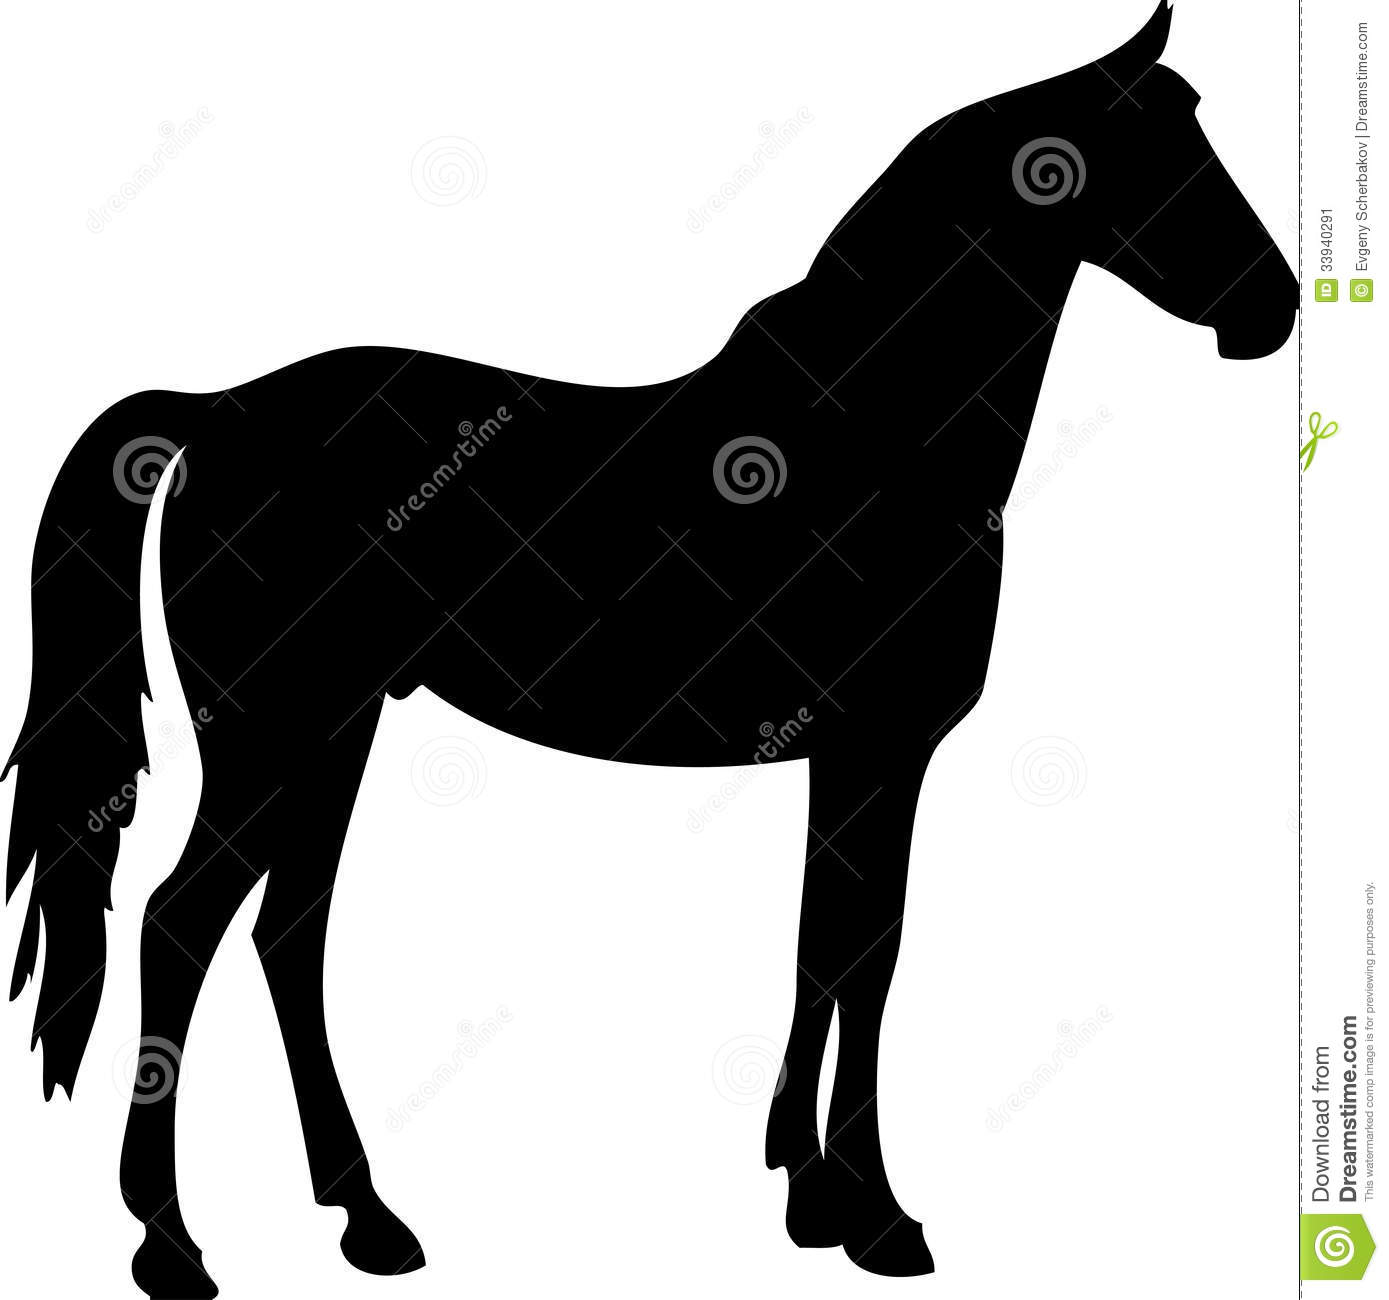 horse silhouettes free vector - photo #27